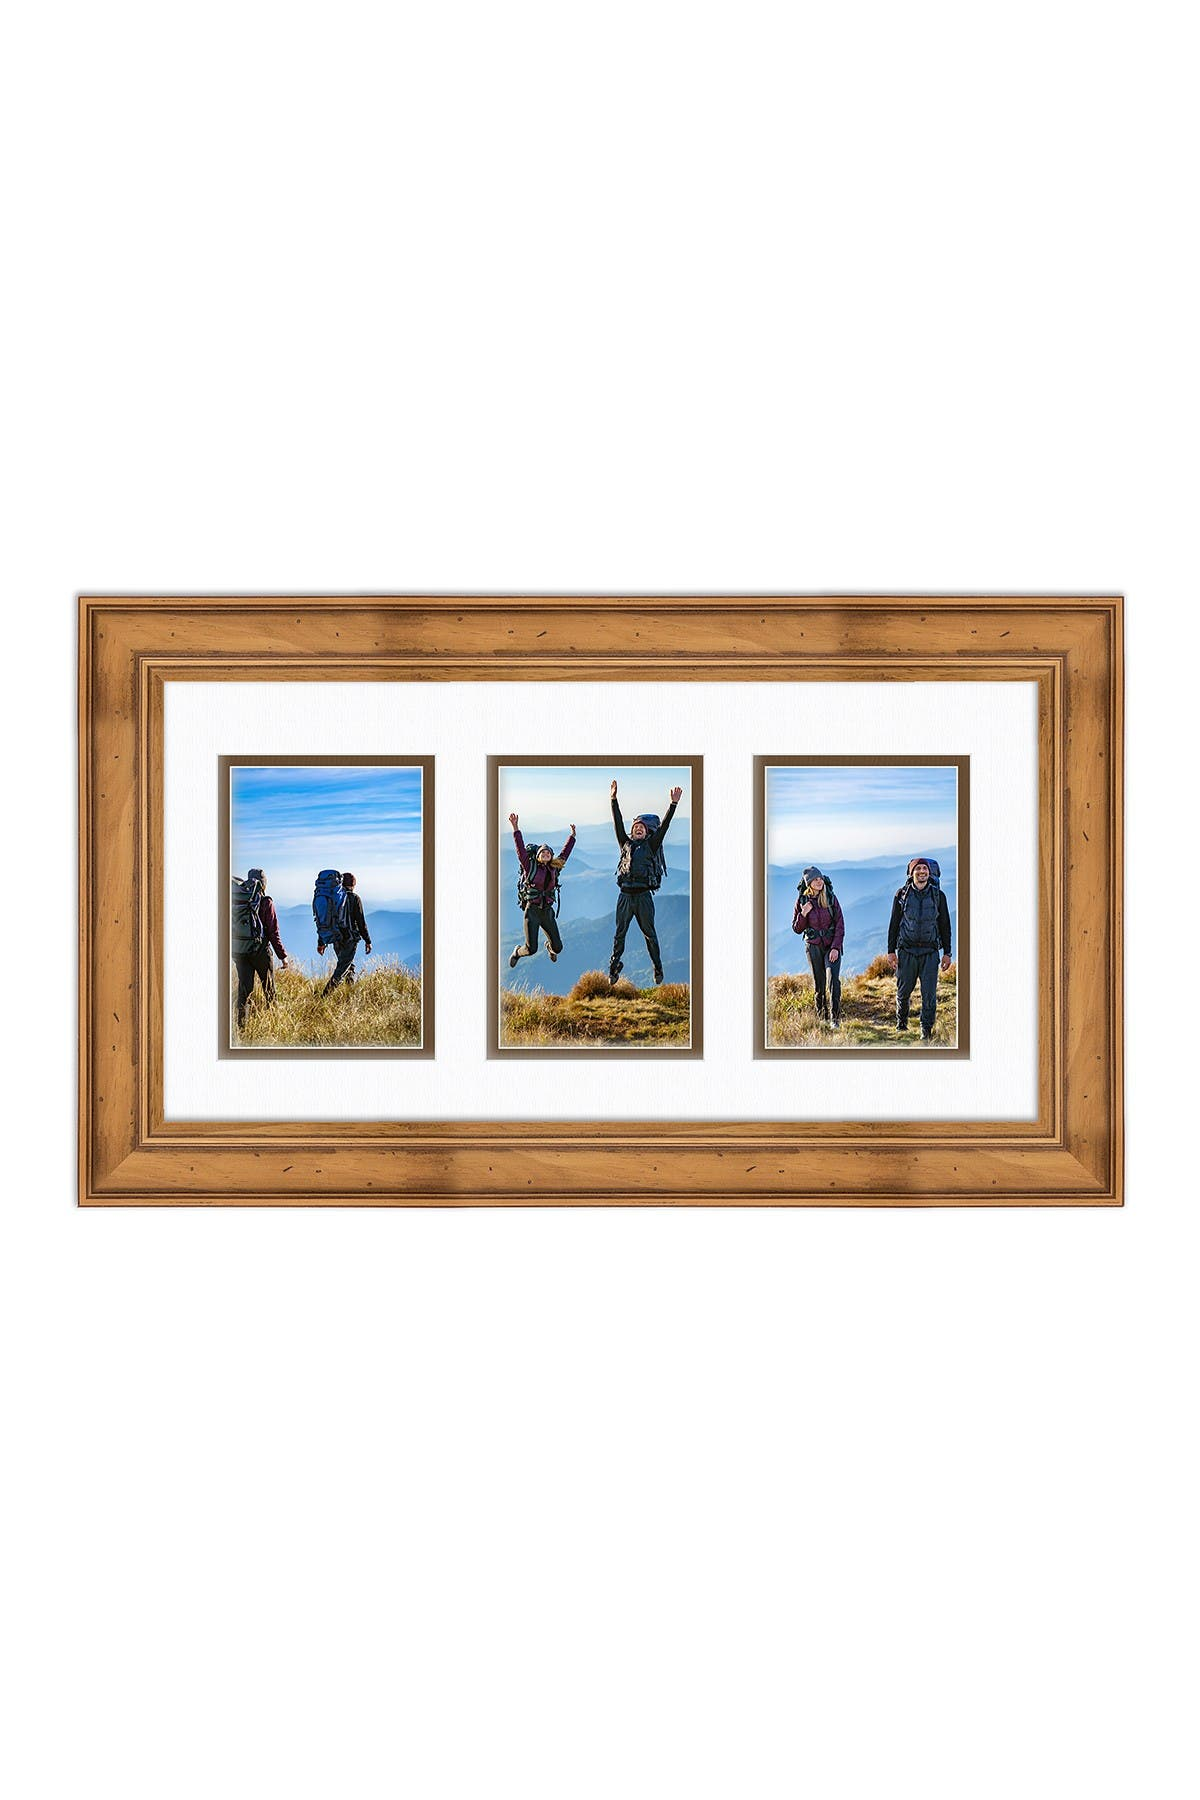 COURTSIDE MARKET Industrial Rustic Collection Natural 10x20 3-5x7 Openings Collage Frame at Nordstrom Rack